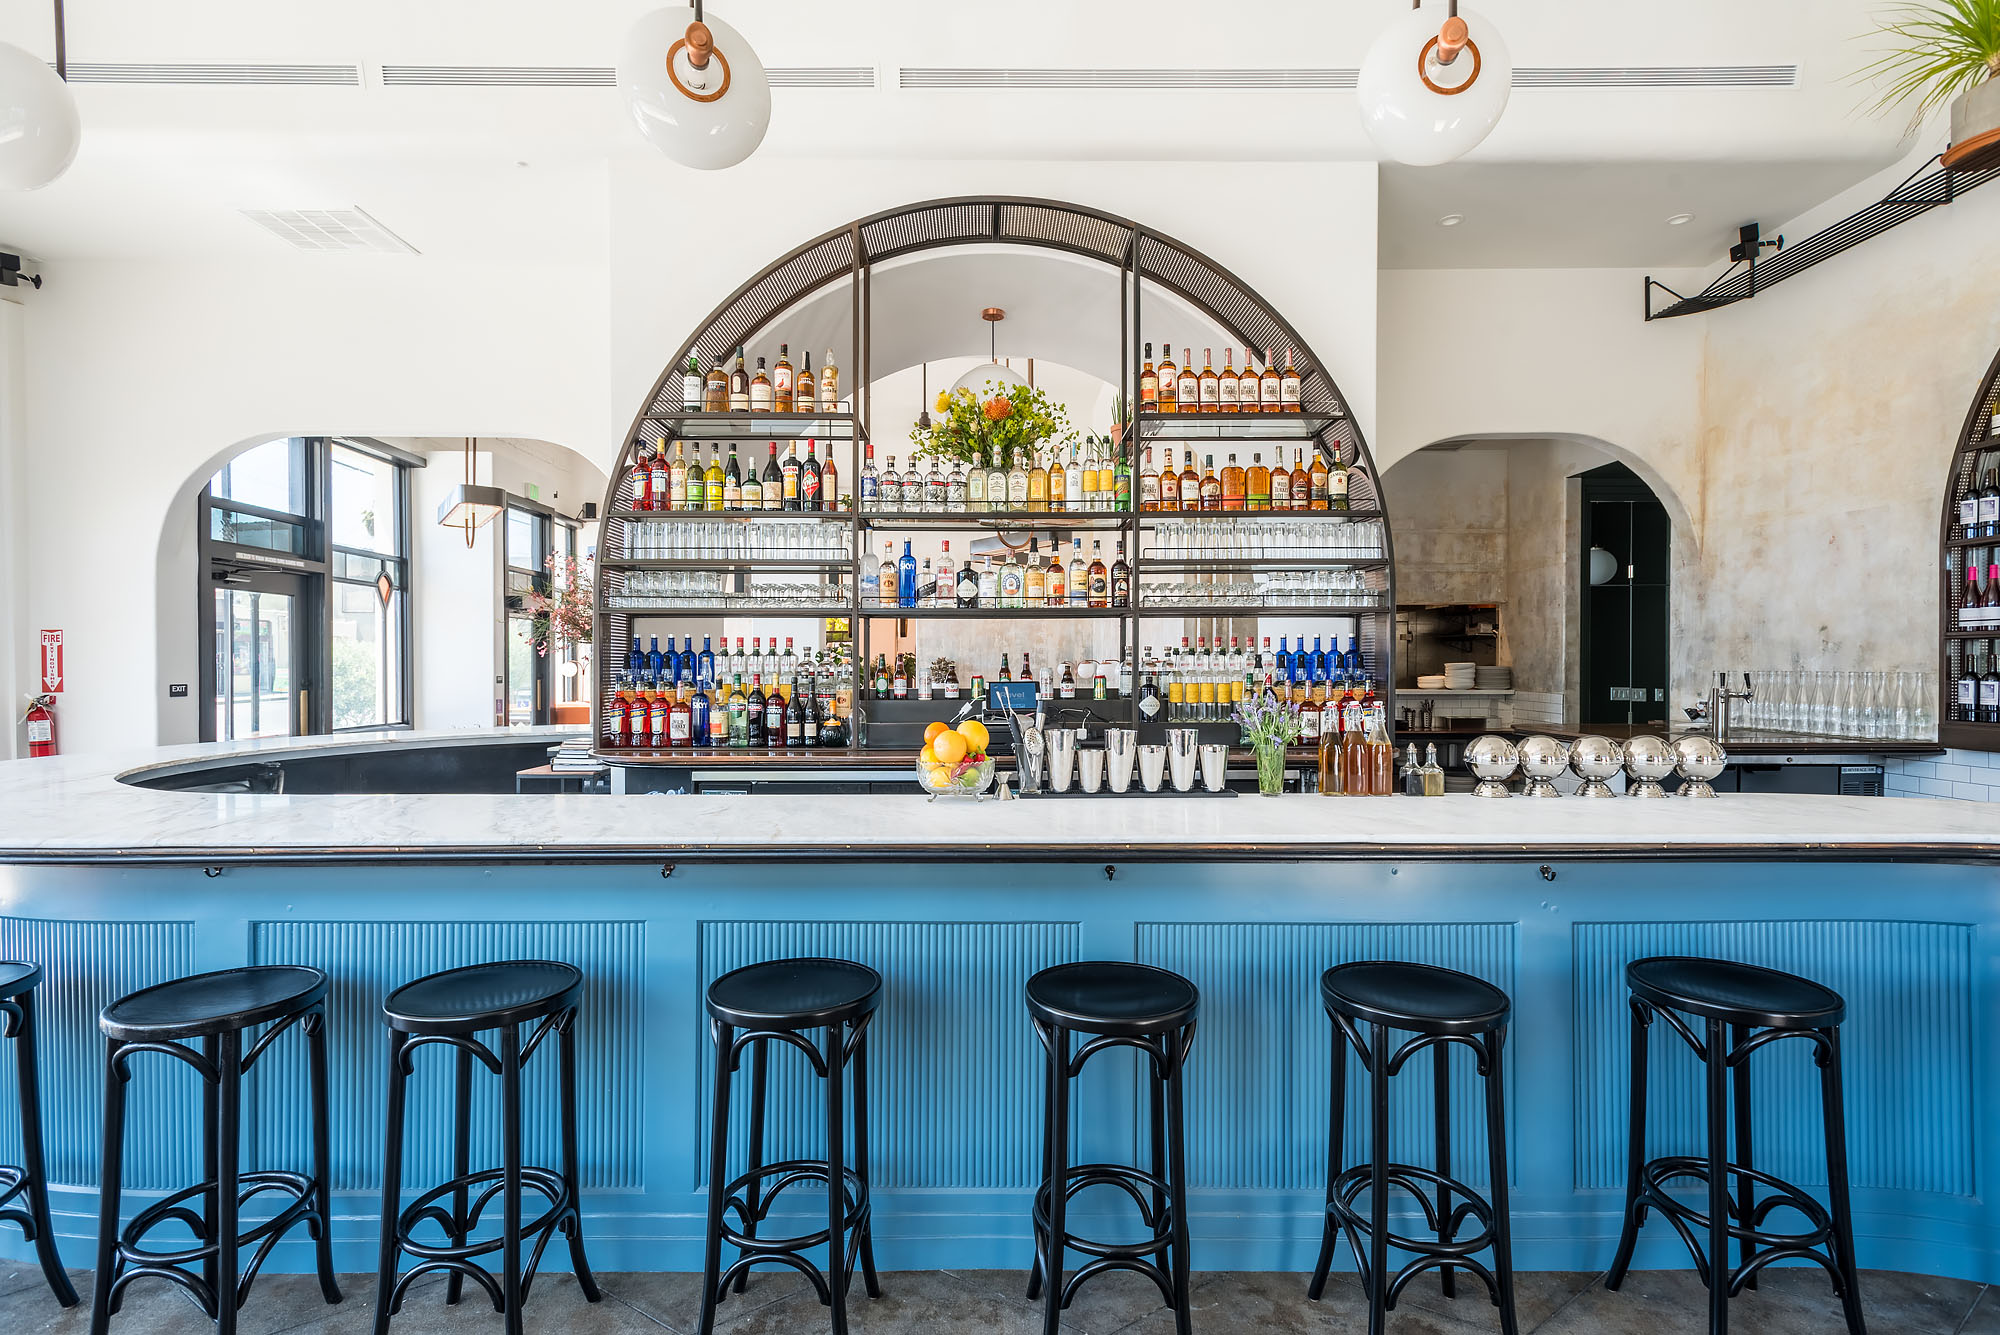 Brooklyn's Stylish Five Leaves Restaurant Opens in East Hollywood